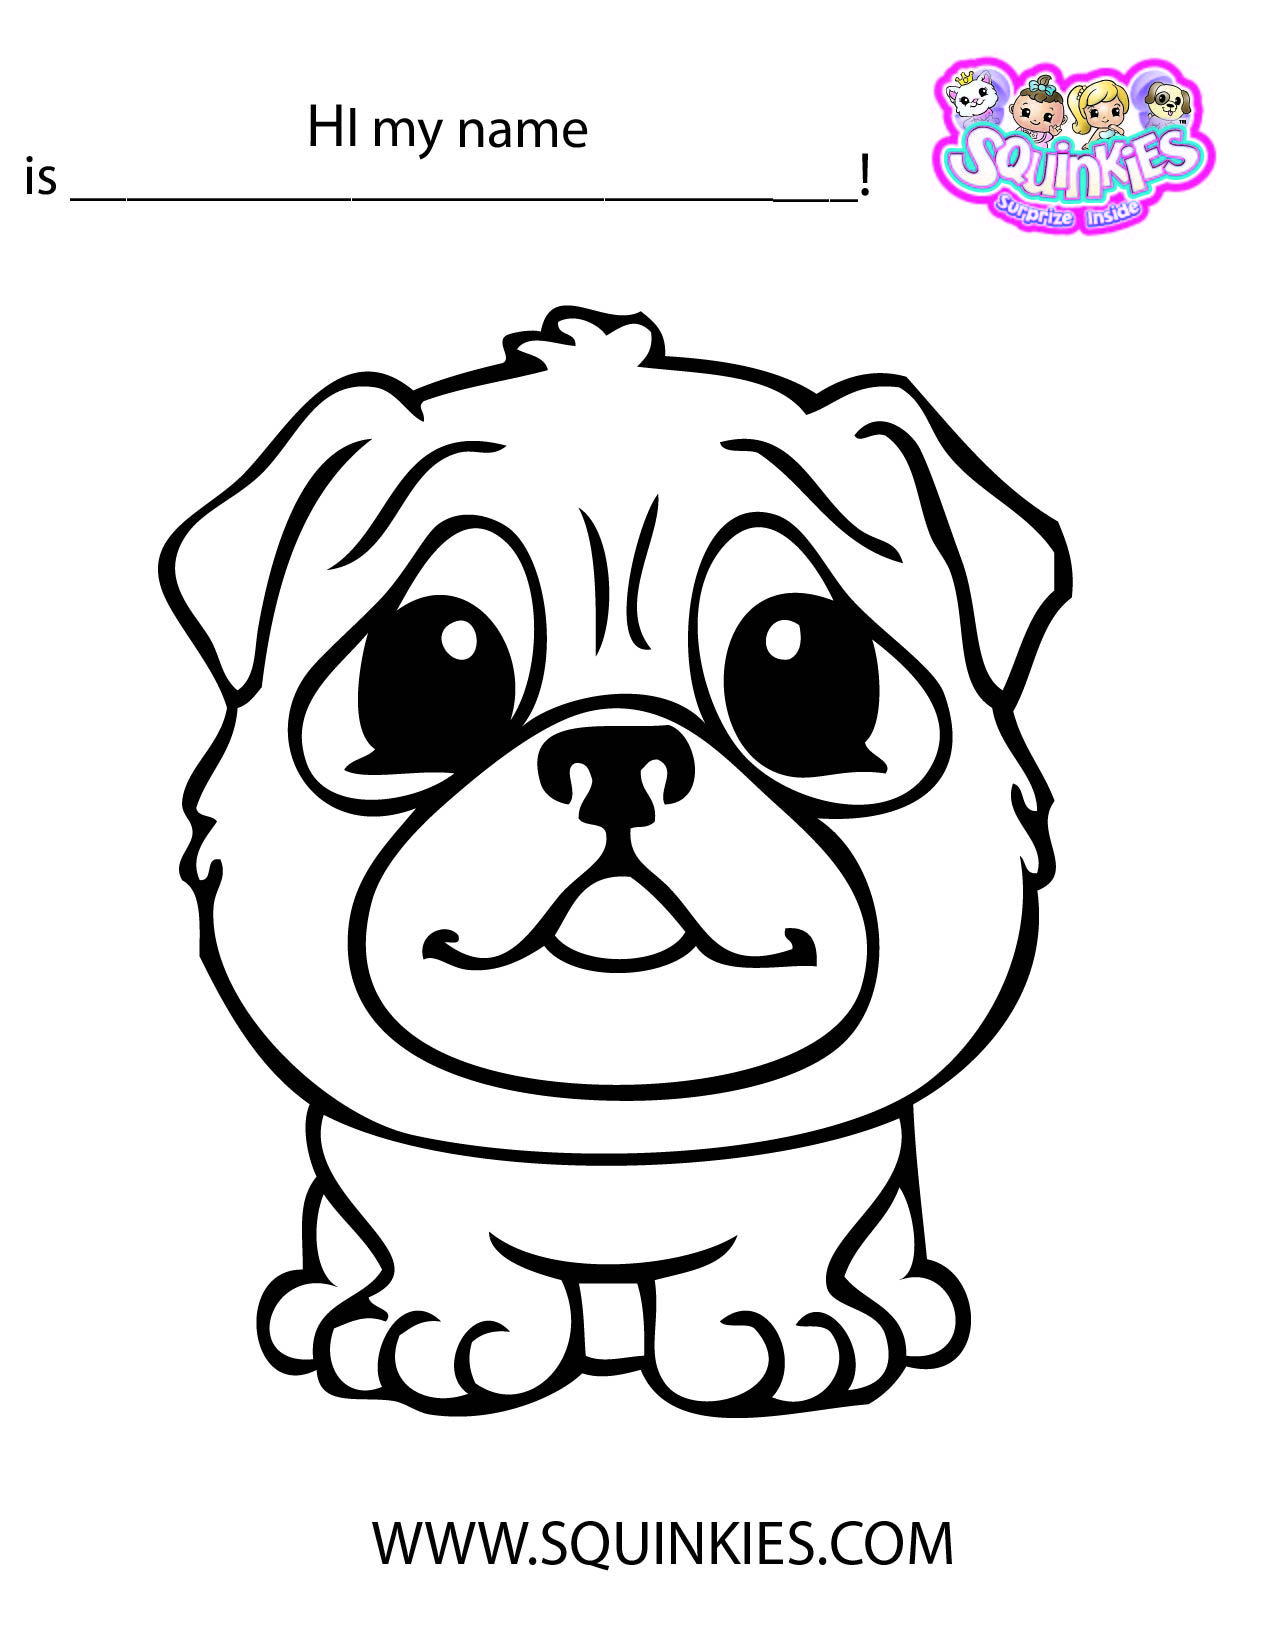 Squinkies Coloring Page! | Squinkies Activities | Pinterest